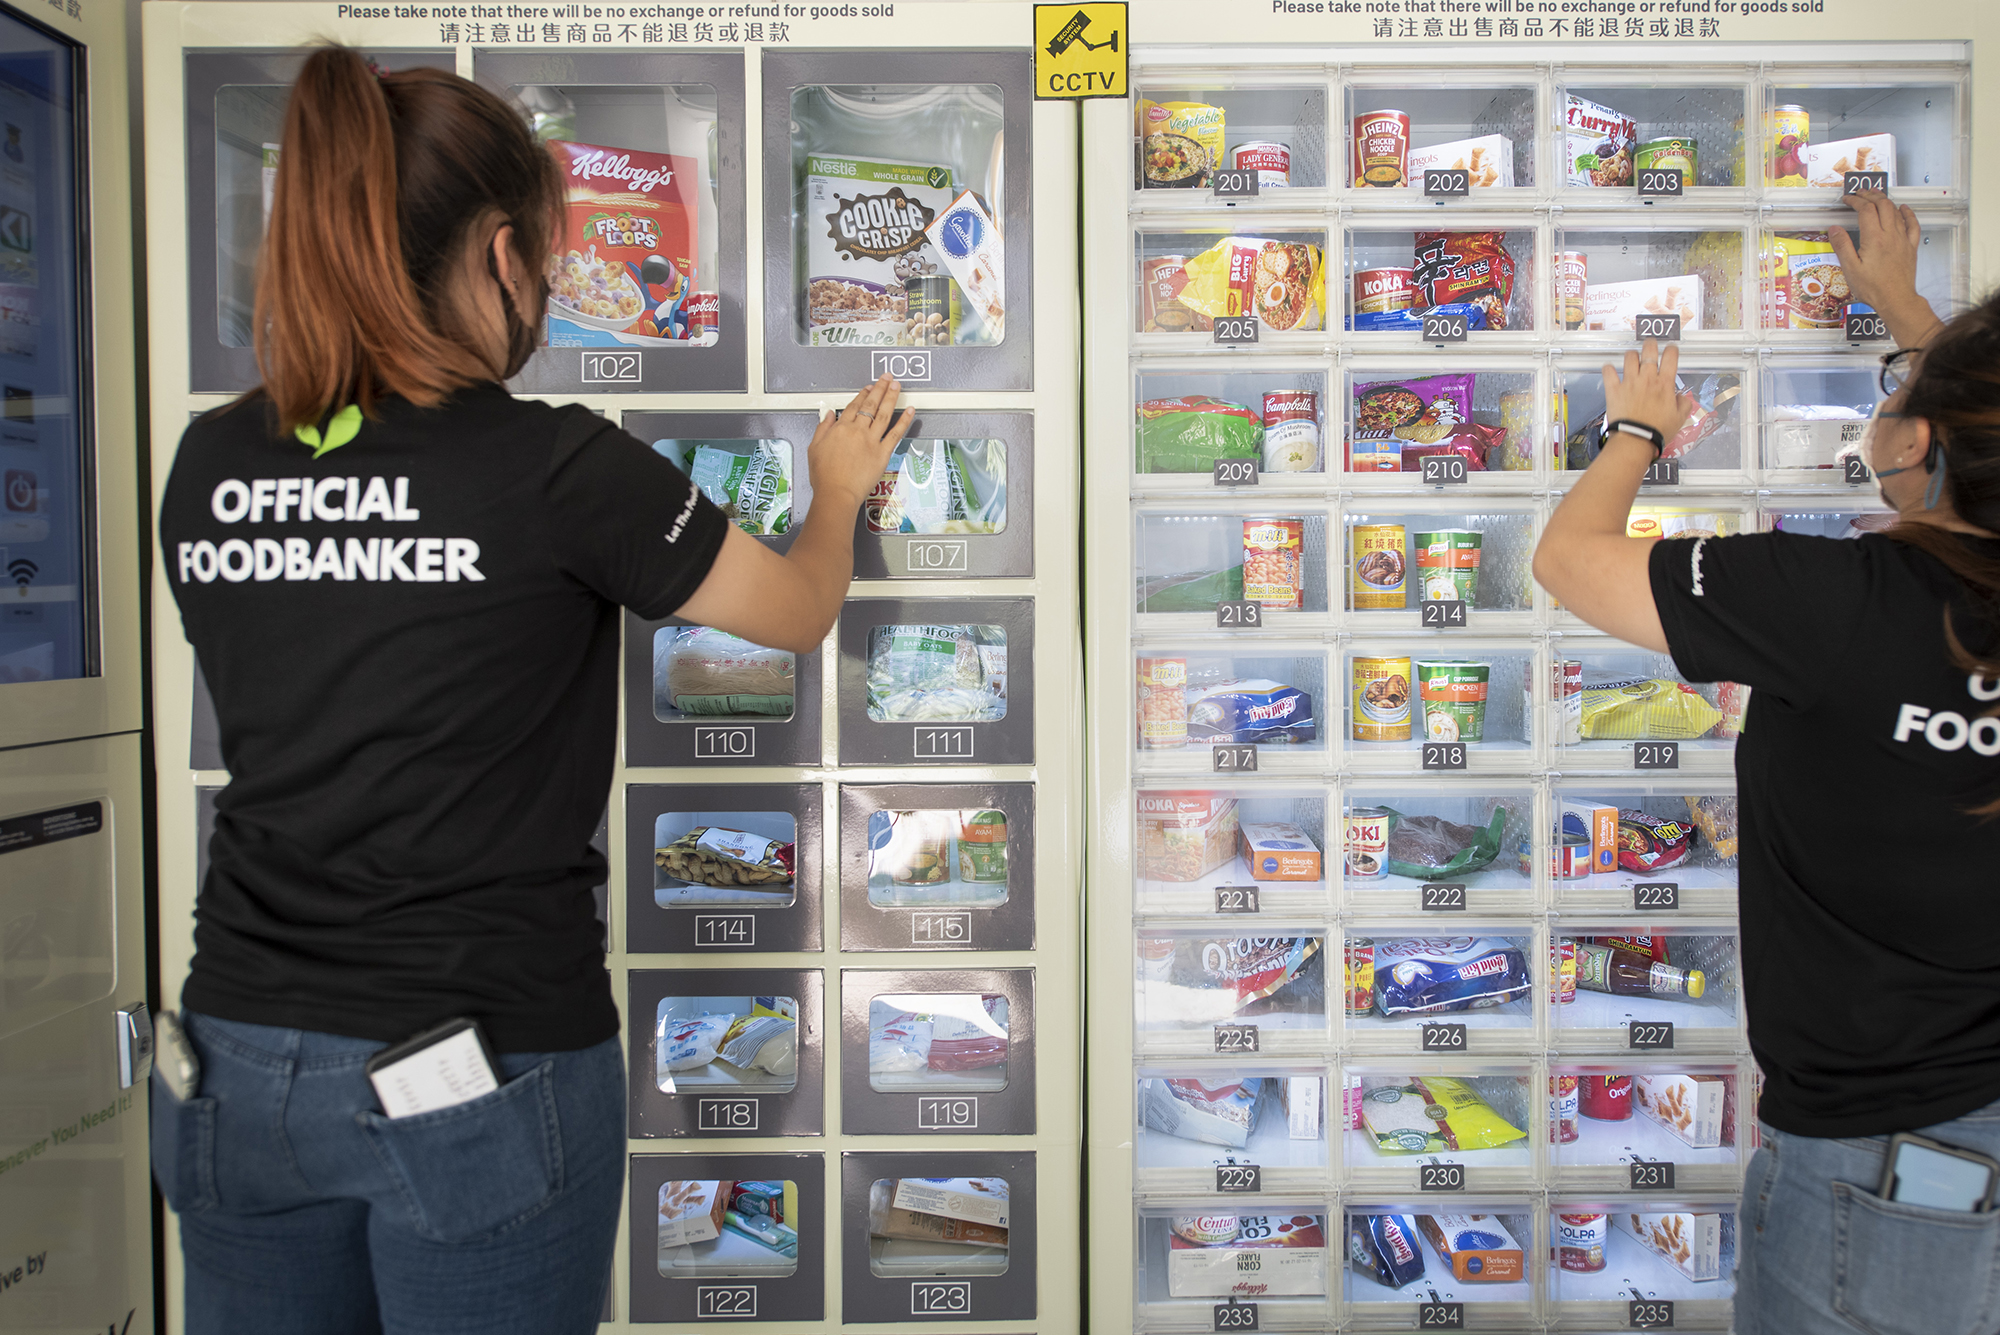 Food Pantry 2.0 vending machines by The Food Bank Singapore